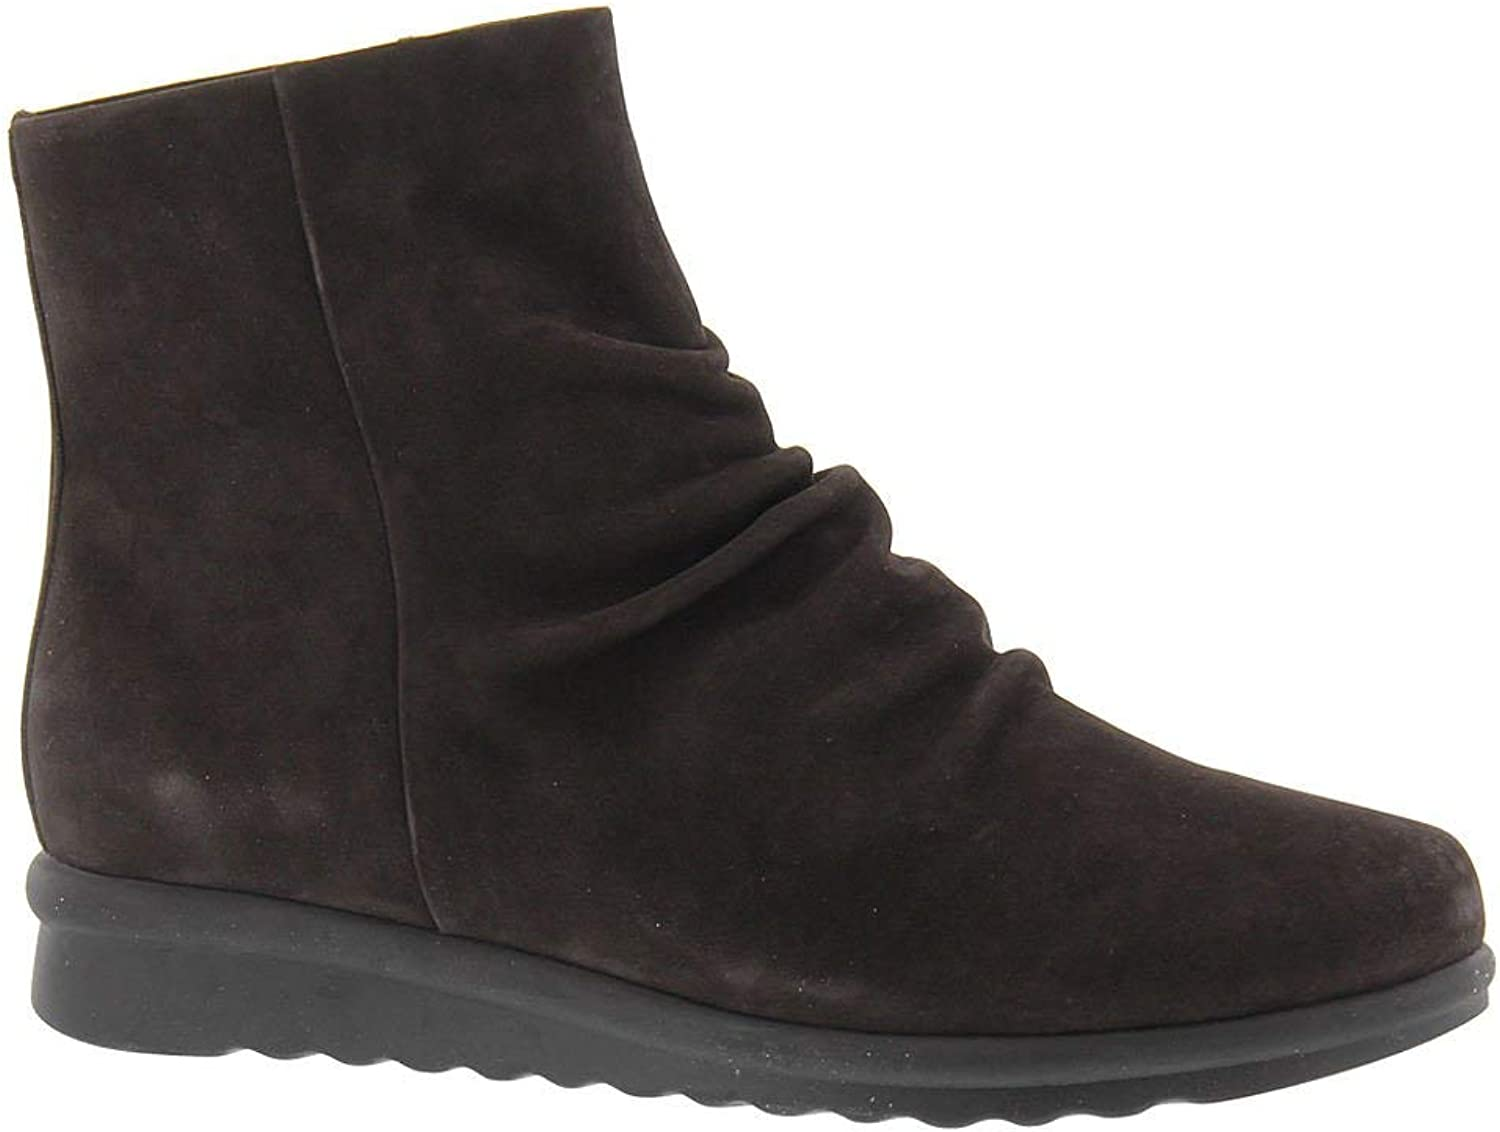 VANELi Womens Dollie Closed Toe Ankle Fashion Boots, Tmgold Nabuck, Size 8.0